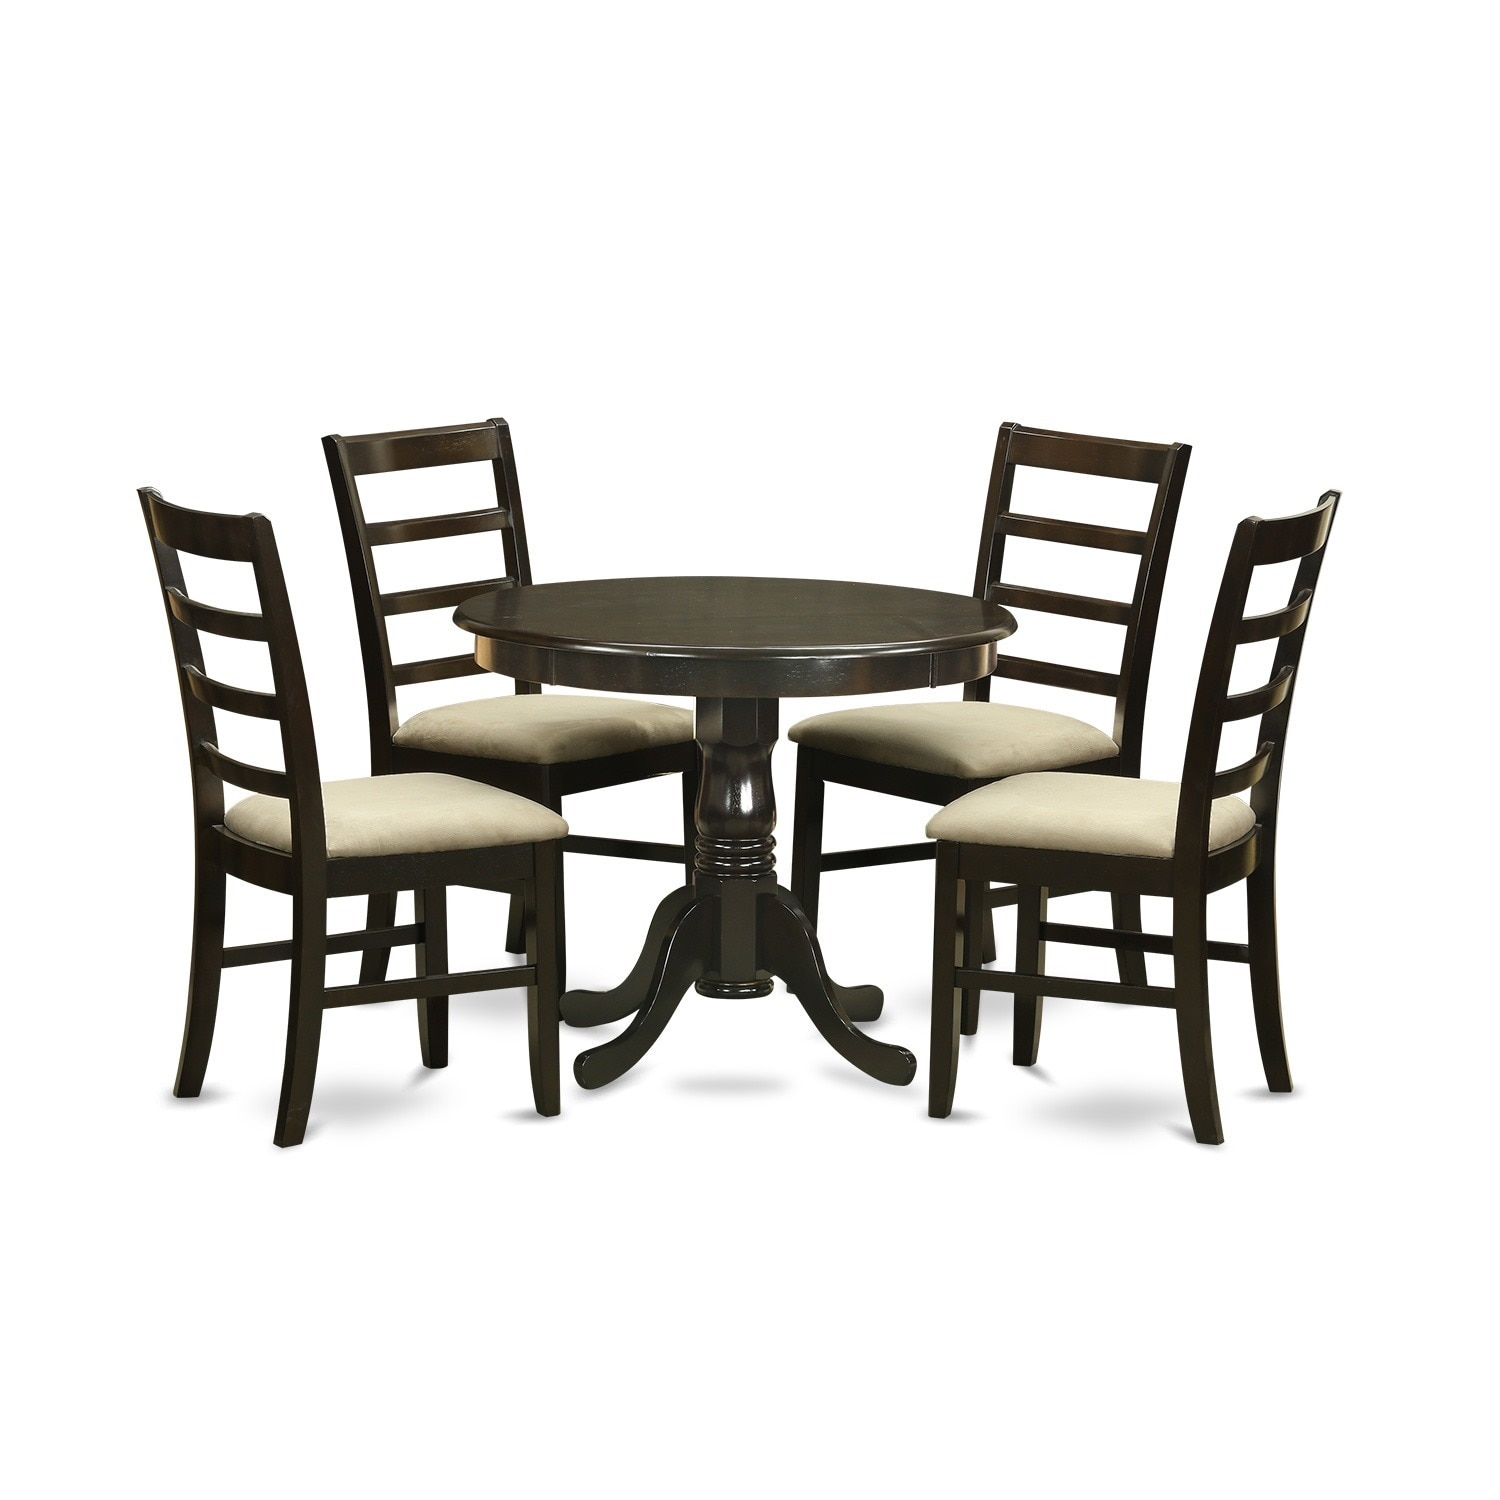 Set Of 4 Kitchen Chairs Details About 5 Piece Kitchen Table Set And 4 Kitchen Chairs